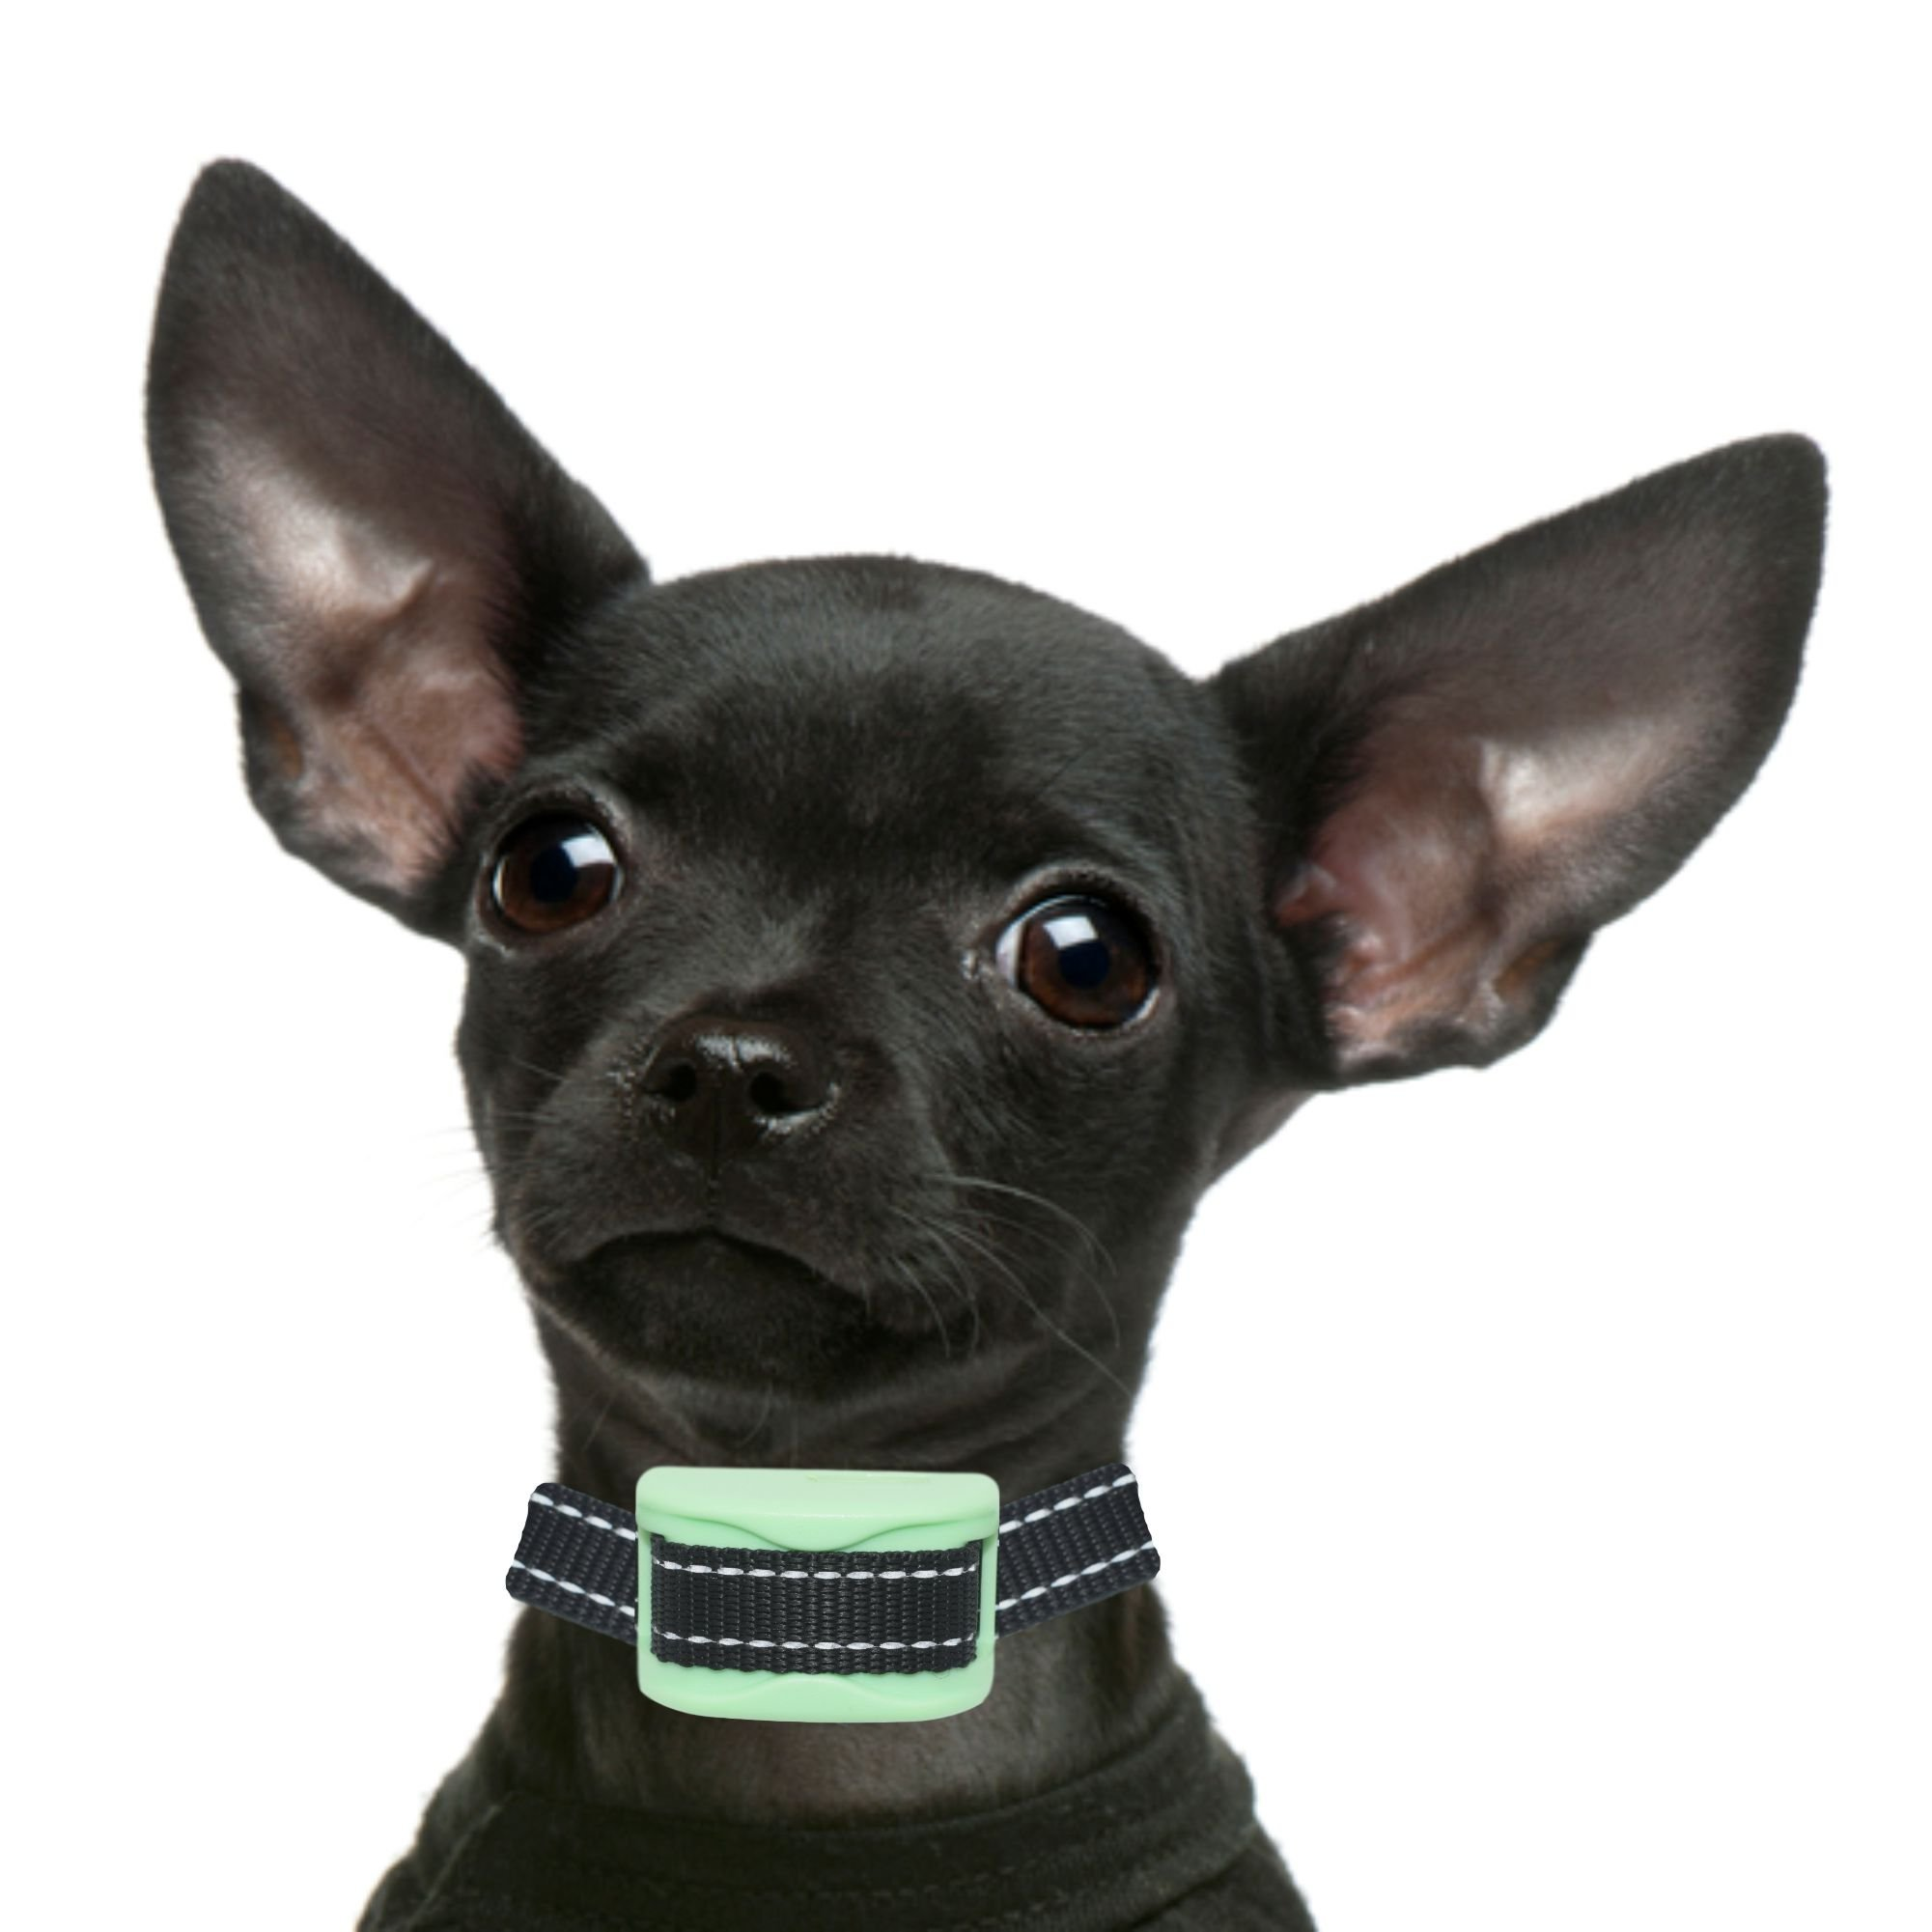 Bark Collar Small Dog - RECHARGEABLE PAIN FREE XS - Small - Beep & Vibration